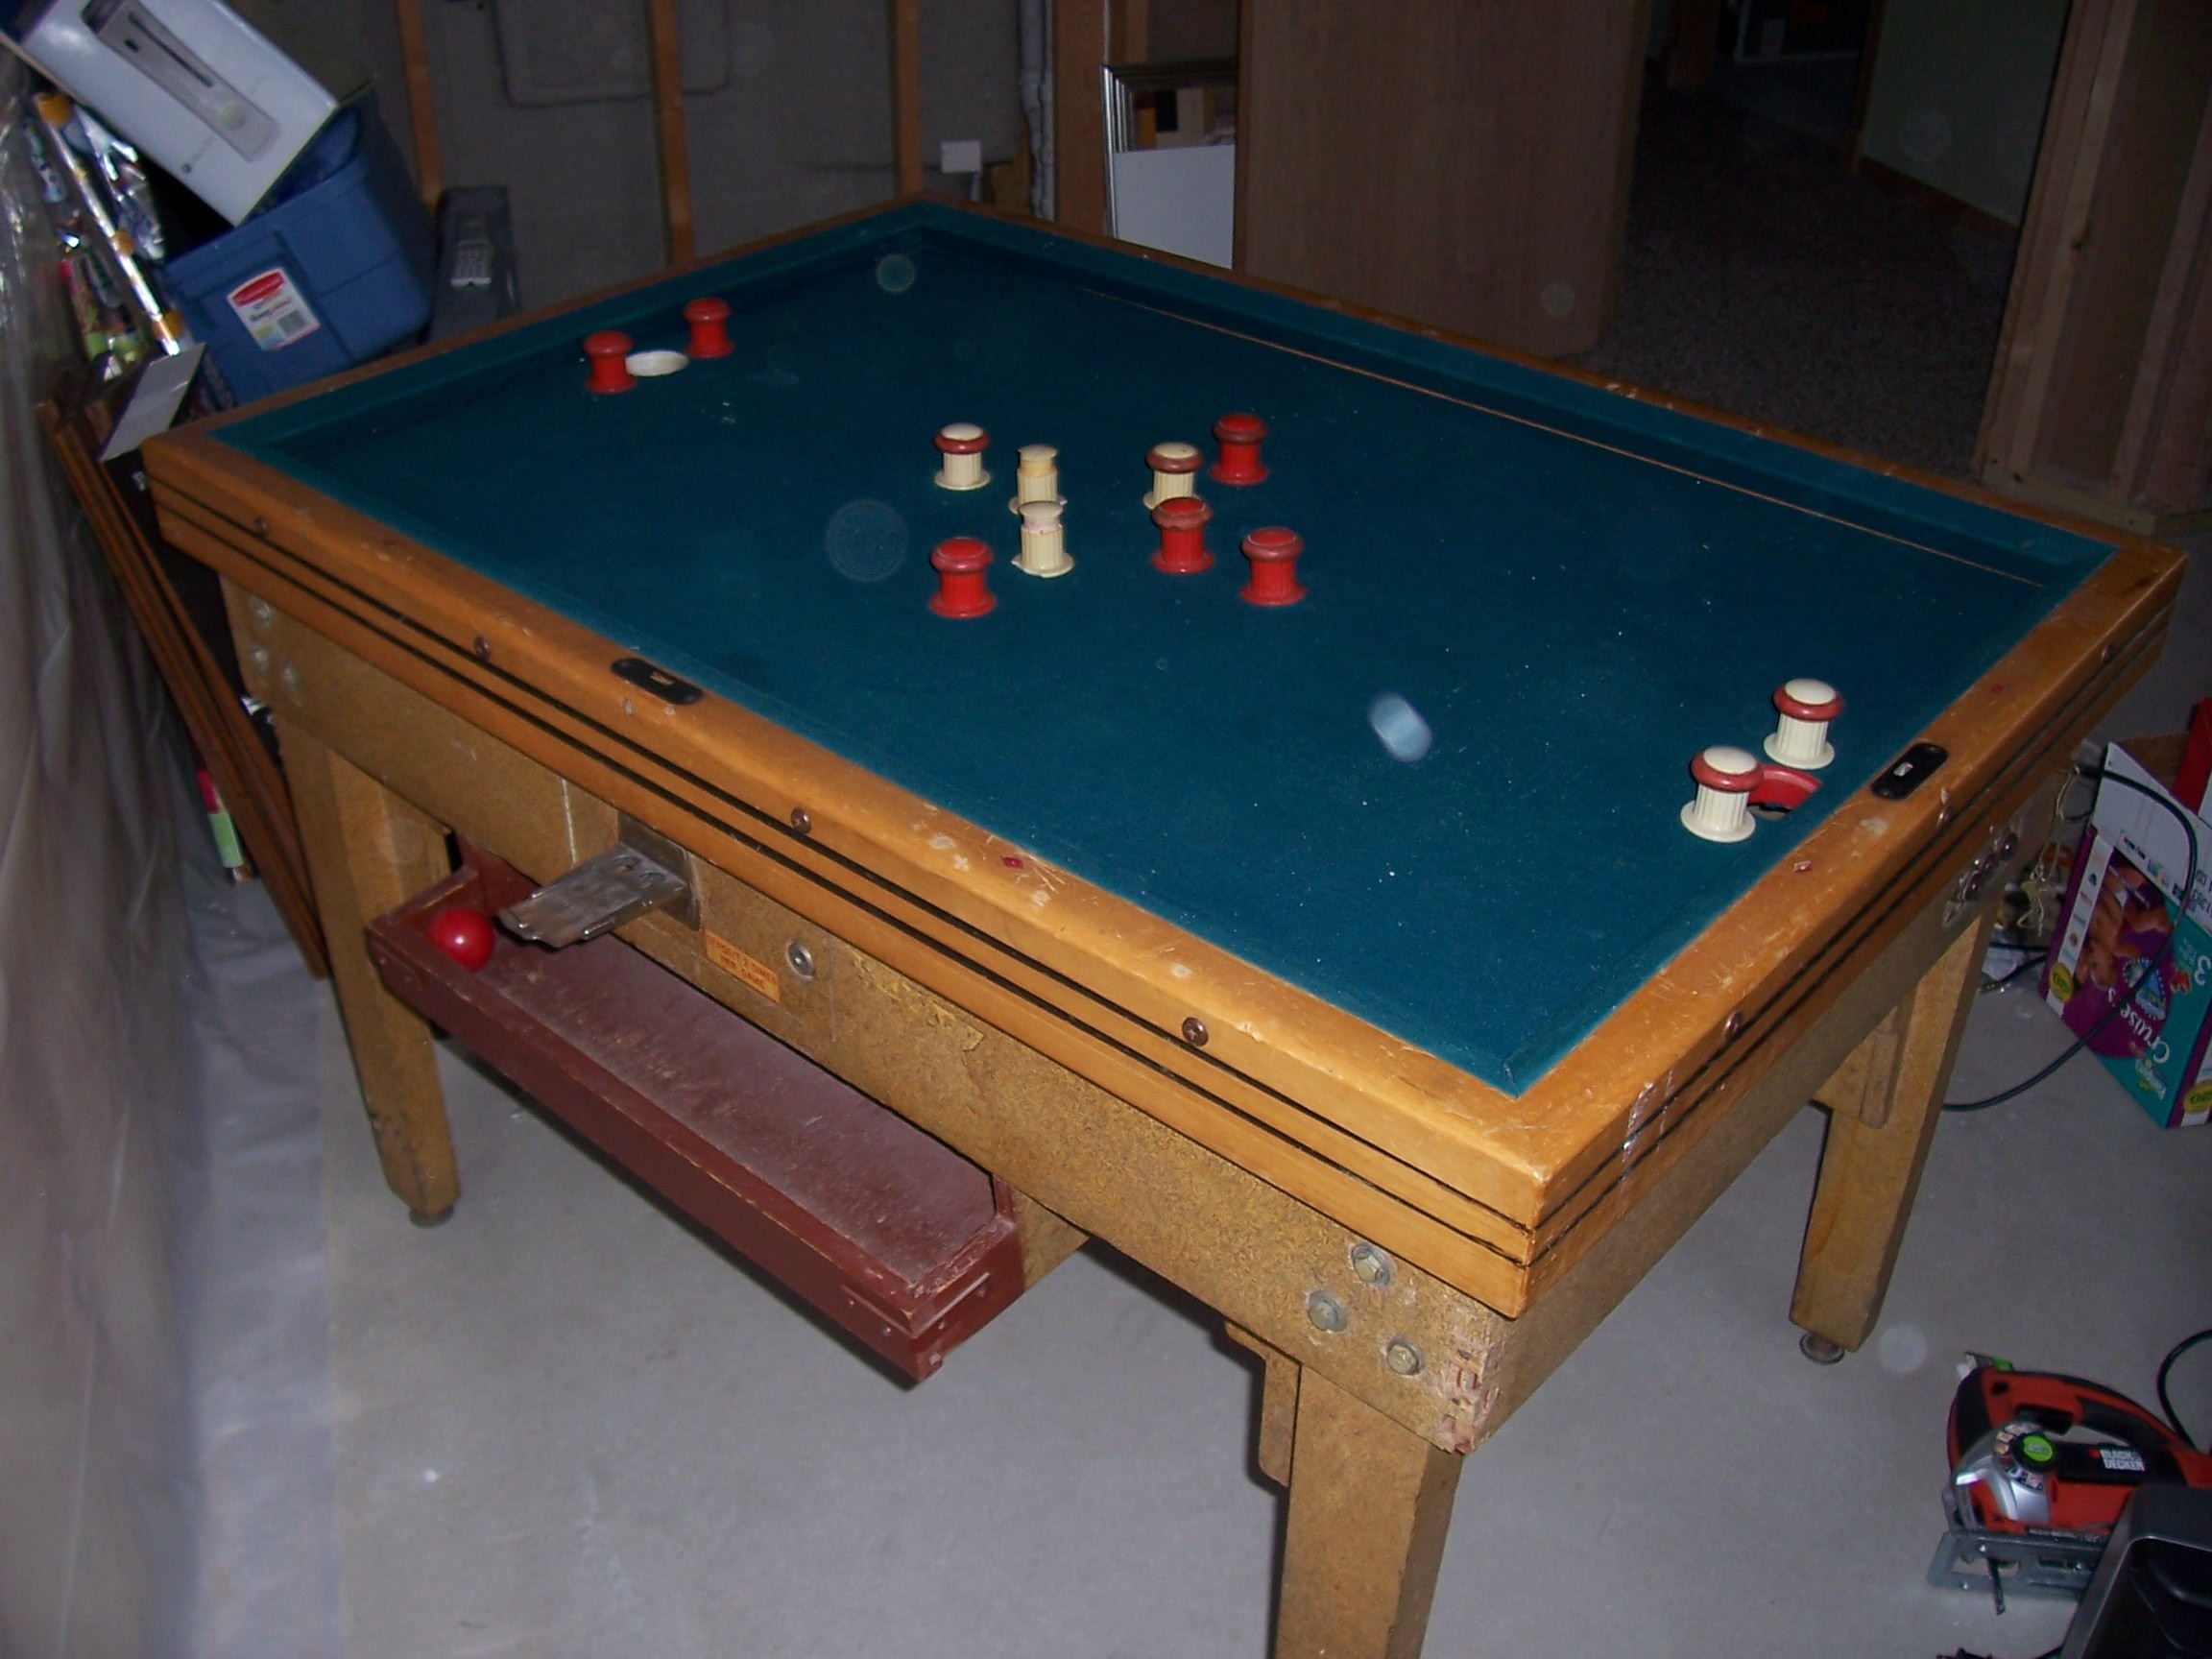 Six Foot Pool Table | Mizerak Pool Table | 6 Foot Pool Table for Sale